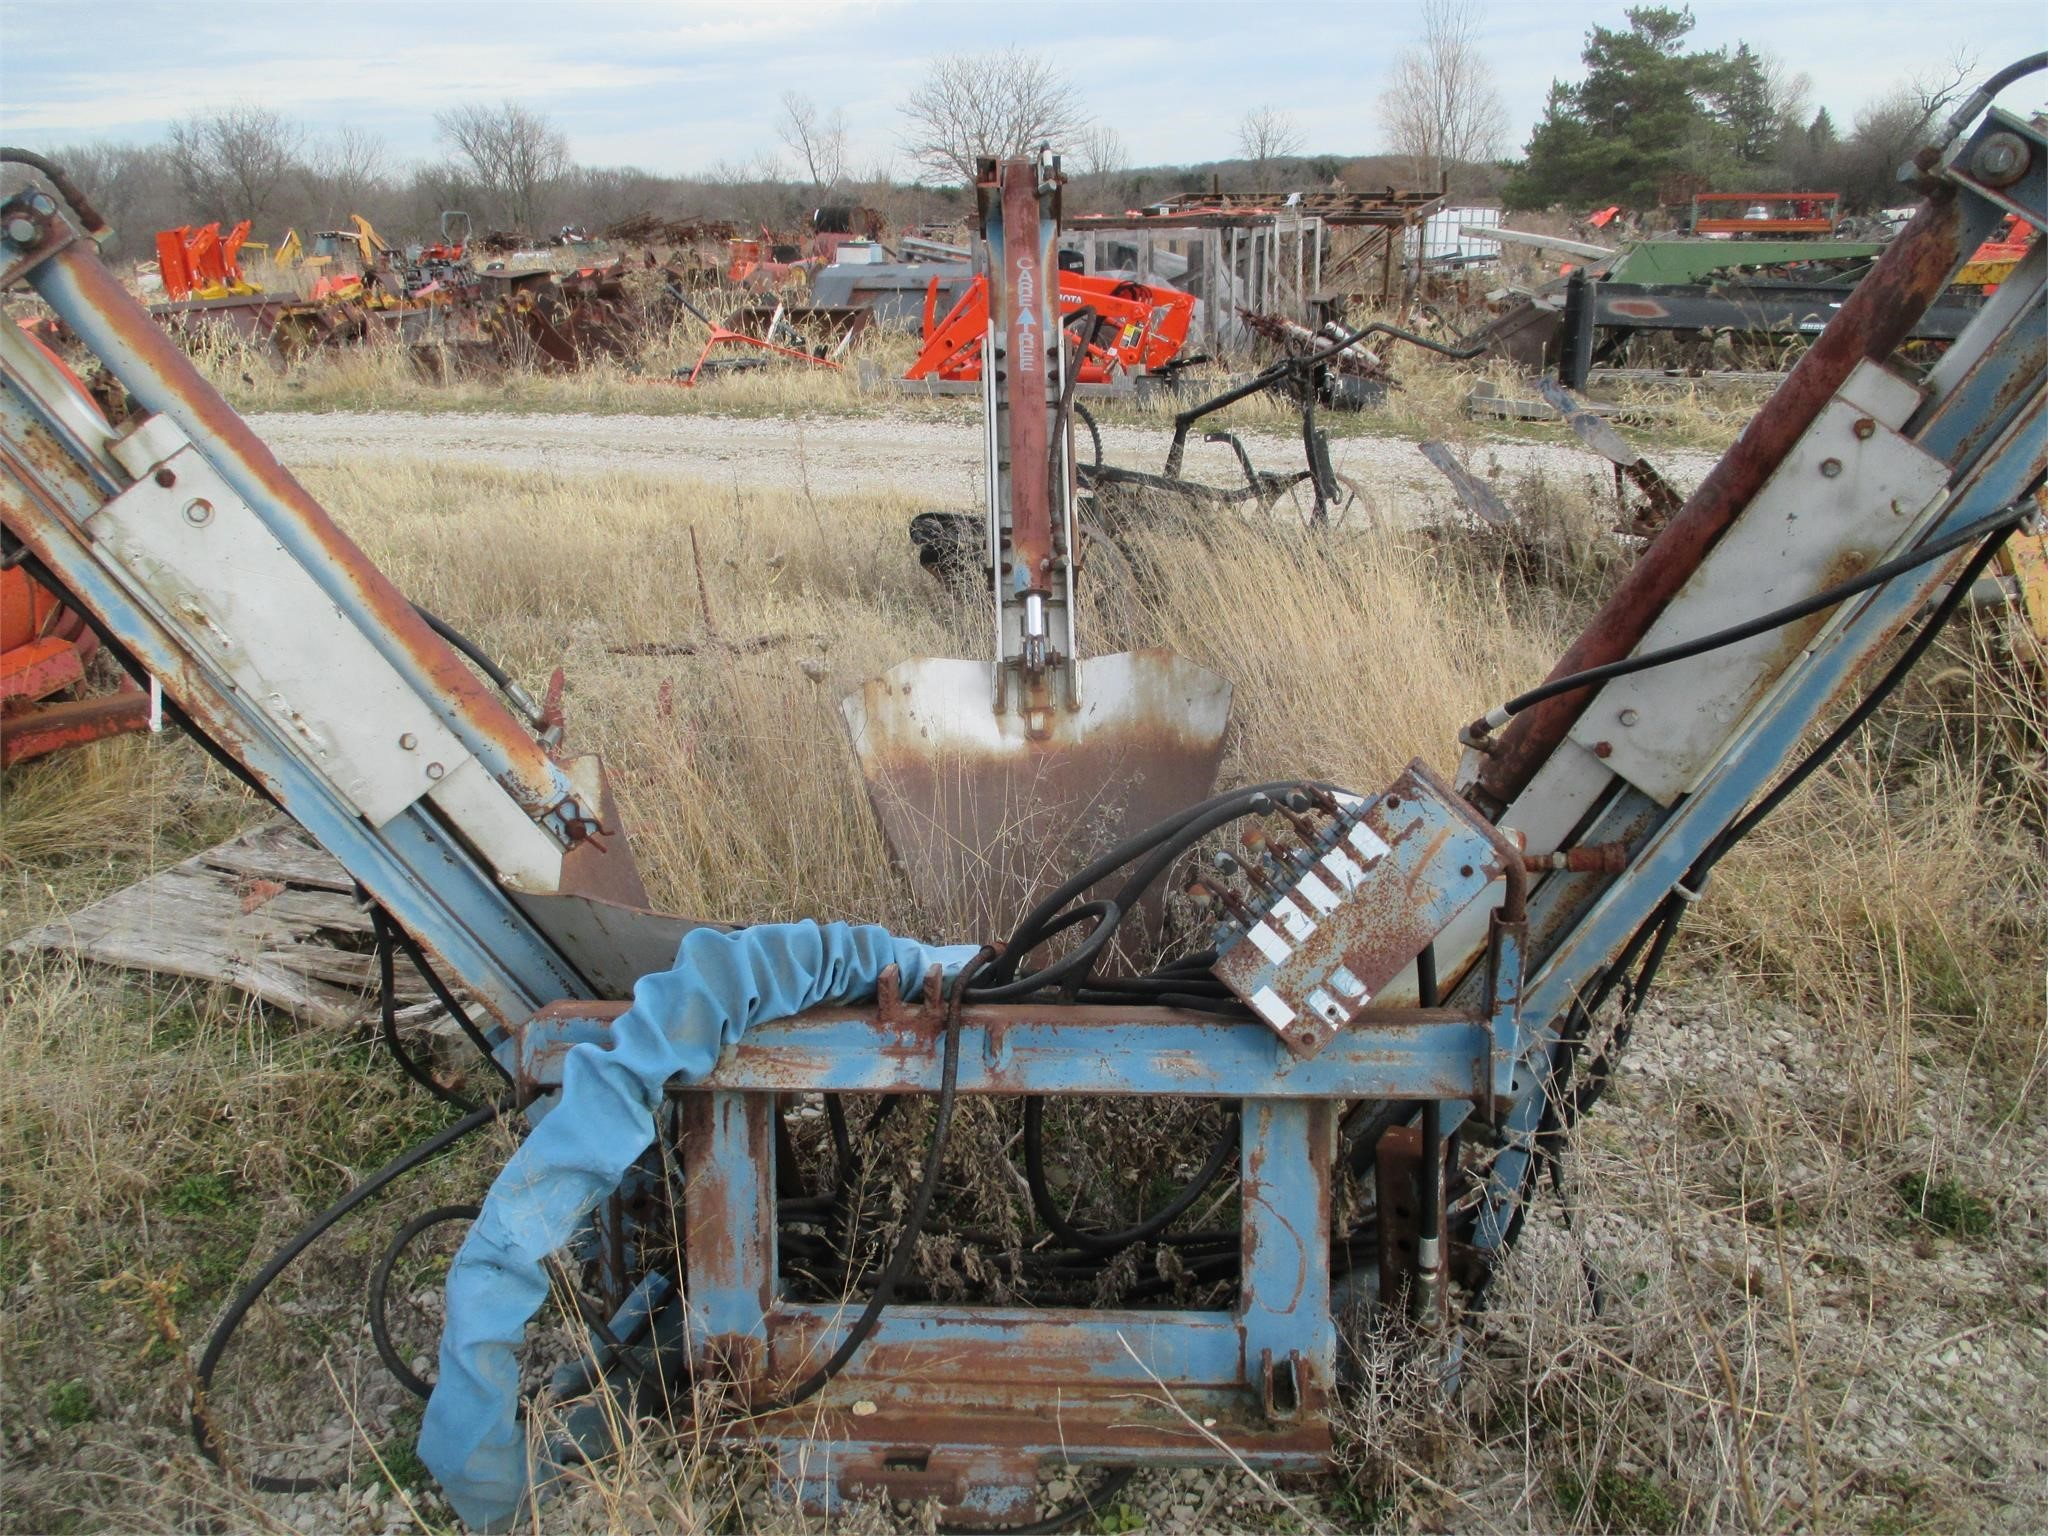 CareTree 532 Loader and Skid Steer Attachment